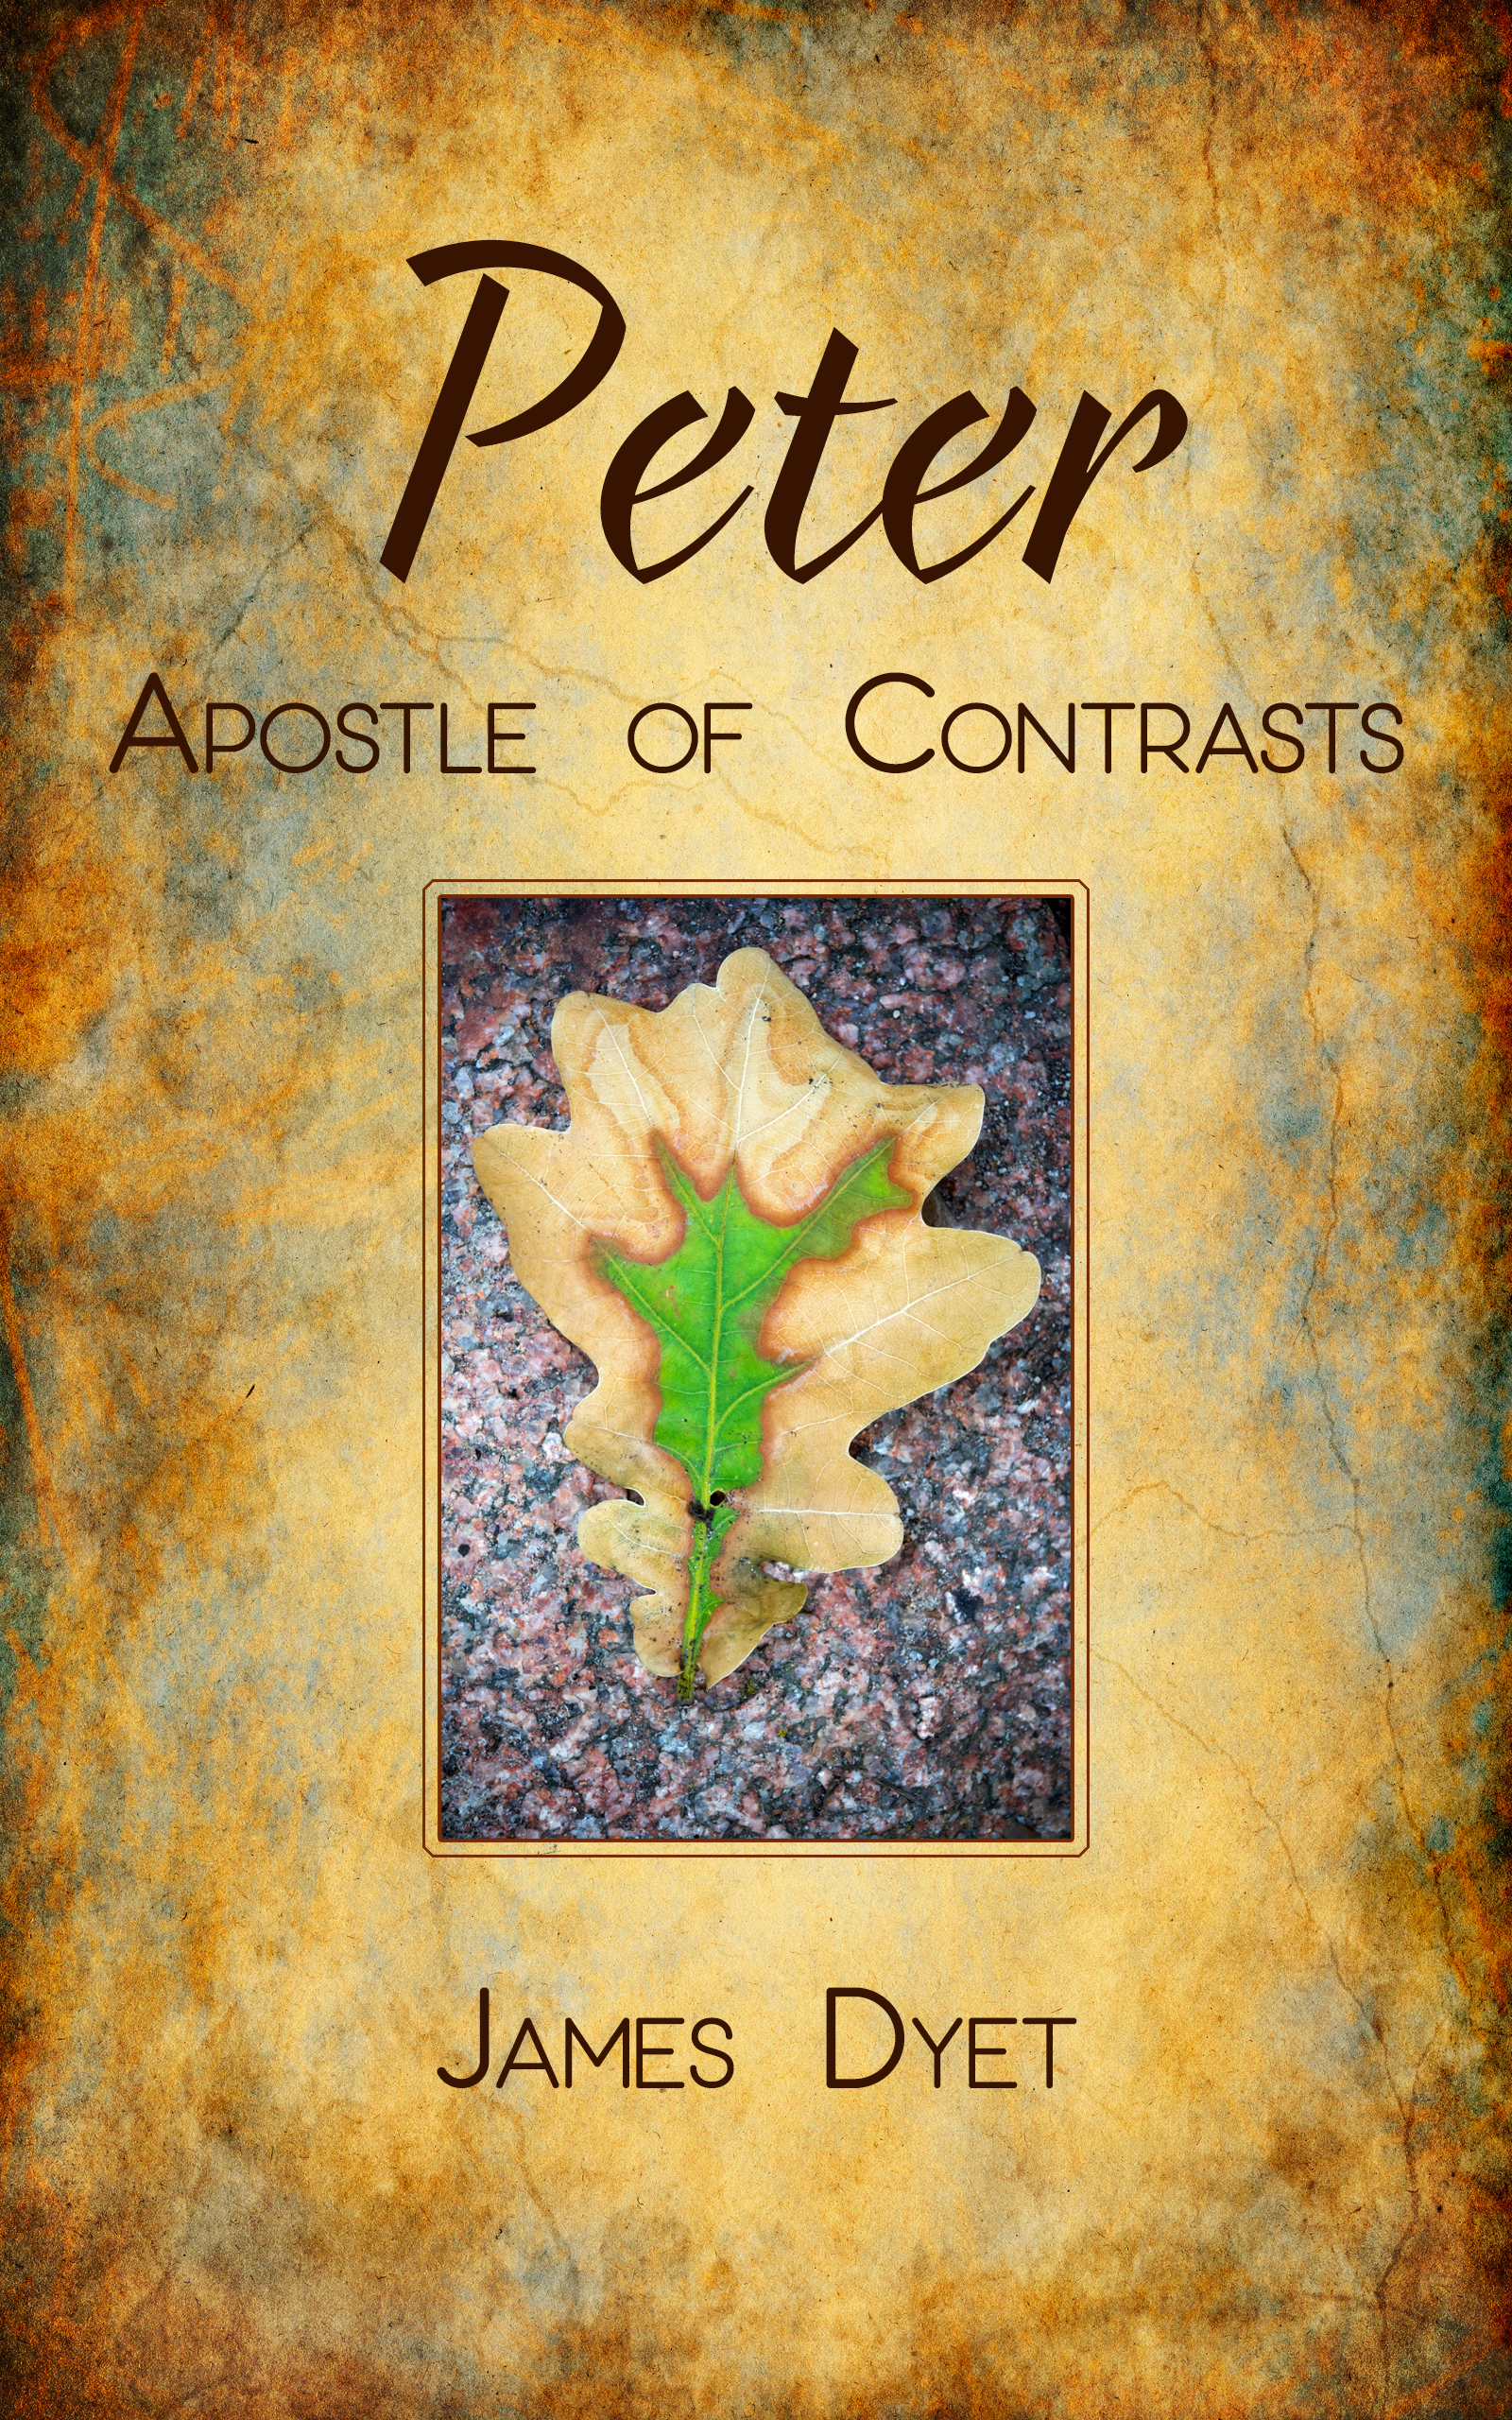 Peter: Apostle of Contrasts